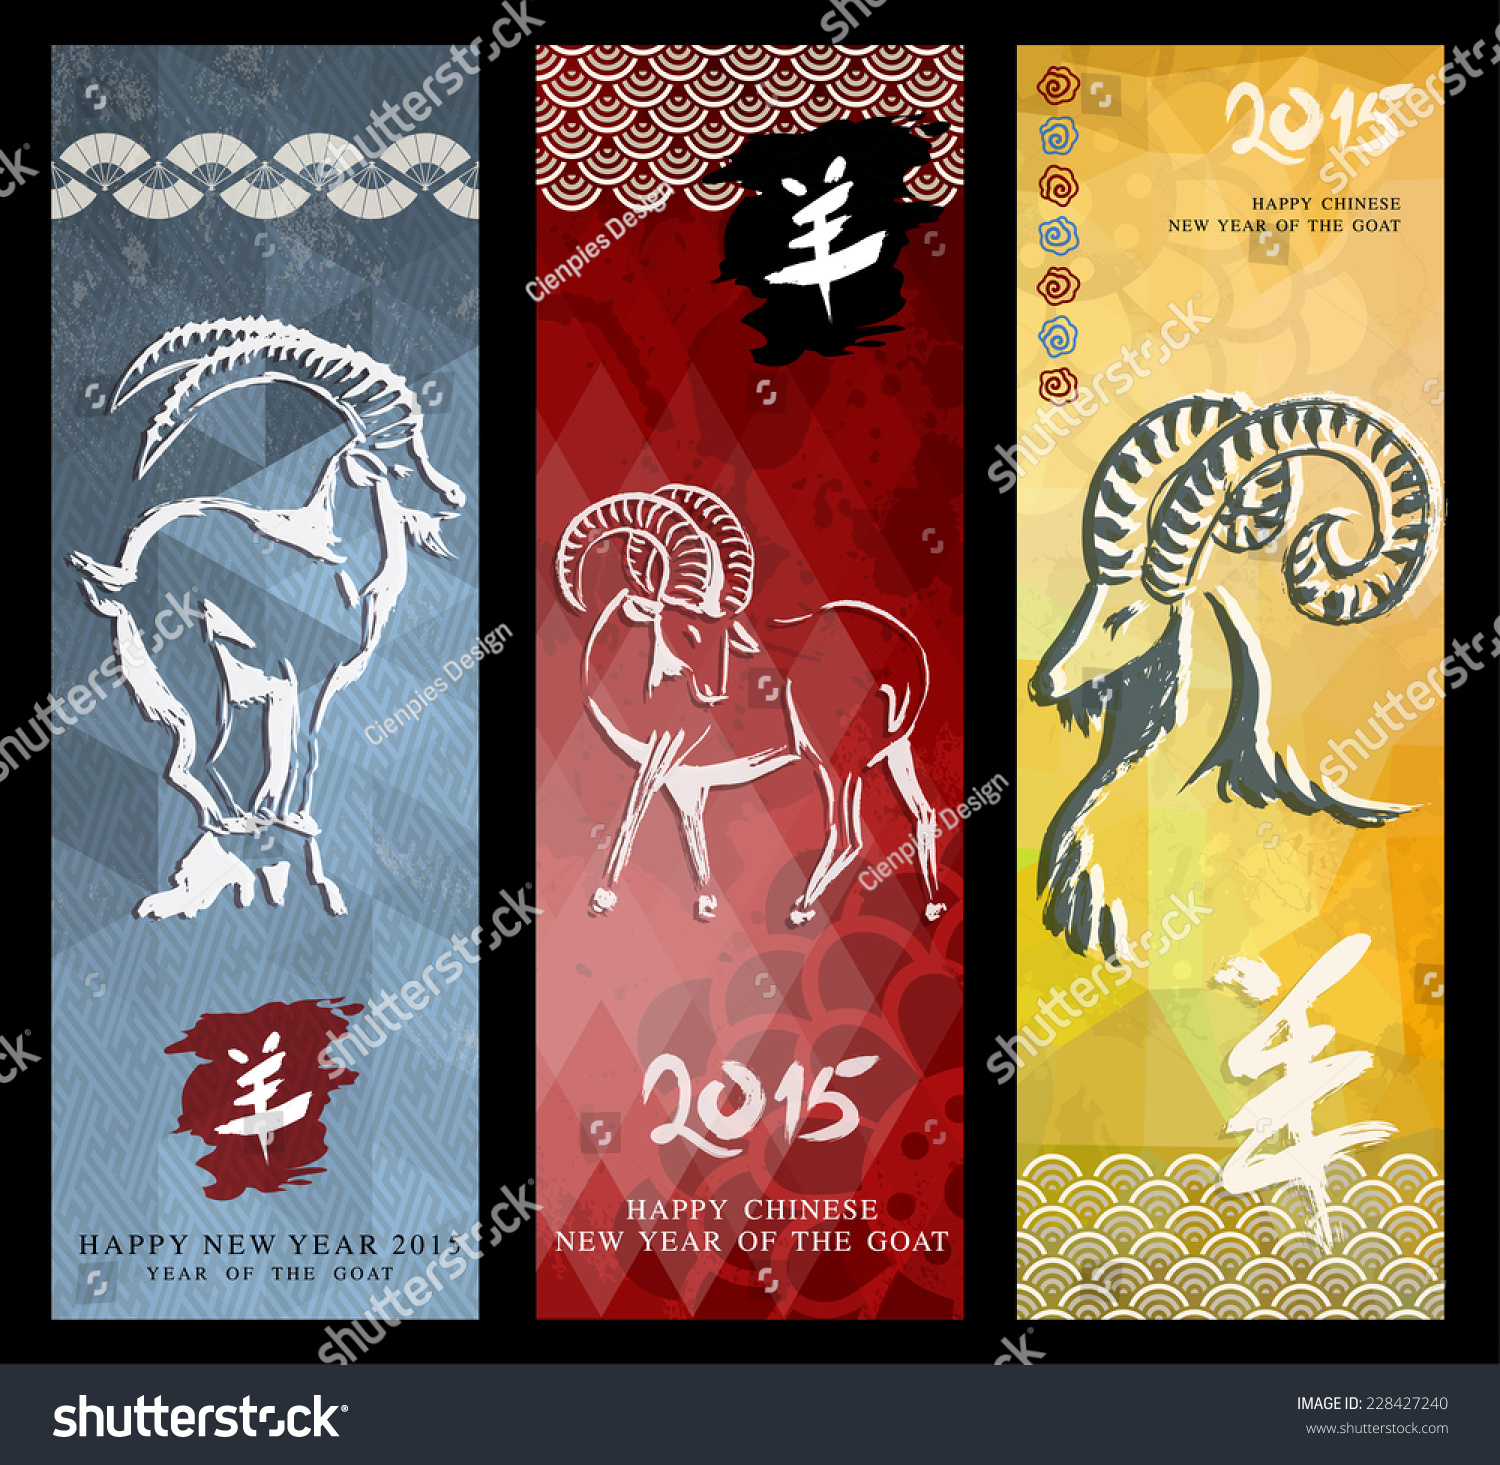 Illustration Of Chinese Dragon Happy Chinese New Year With ...  Happy Chinese New Year 2015